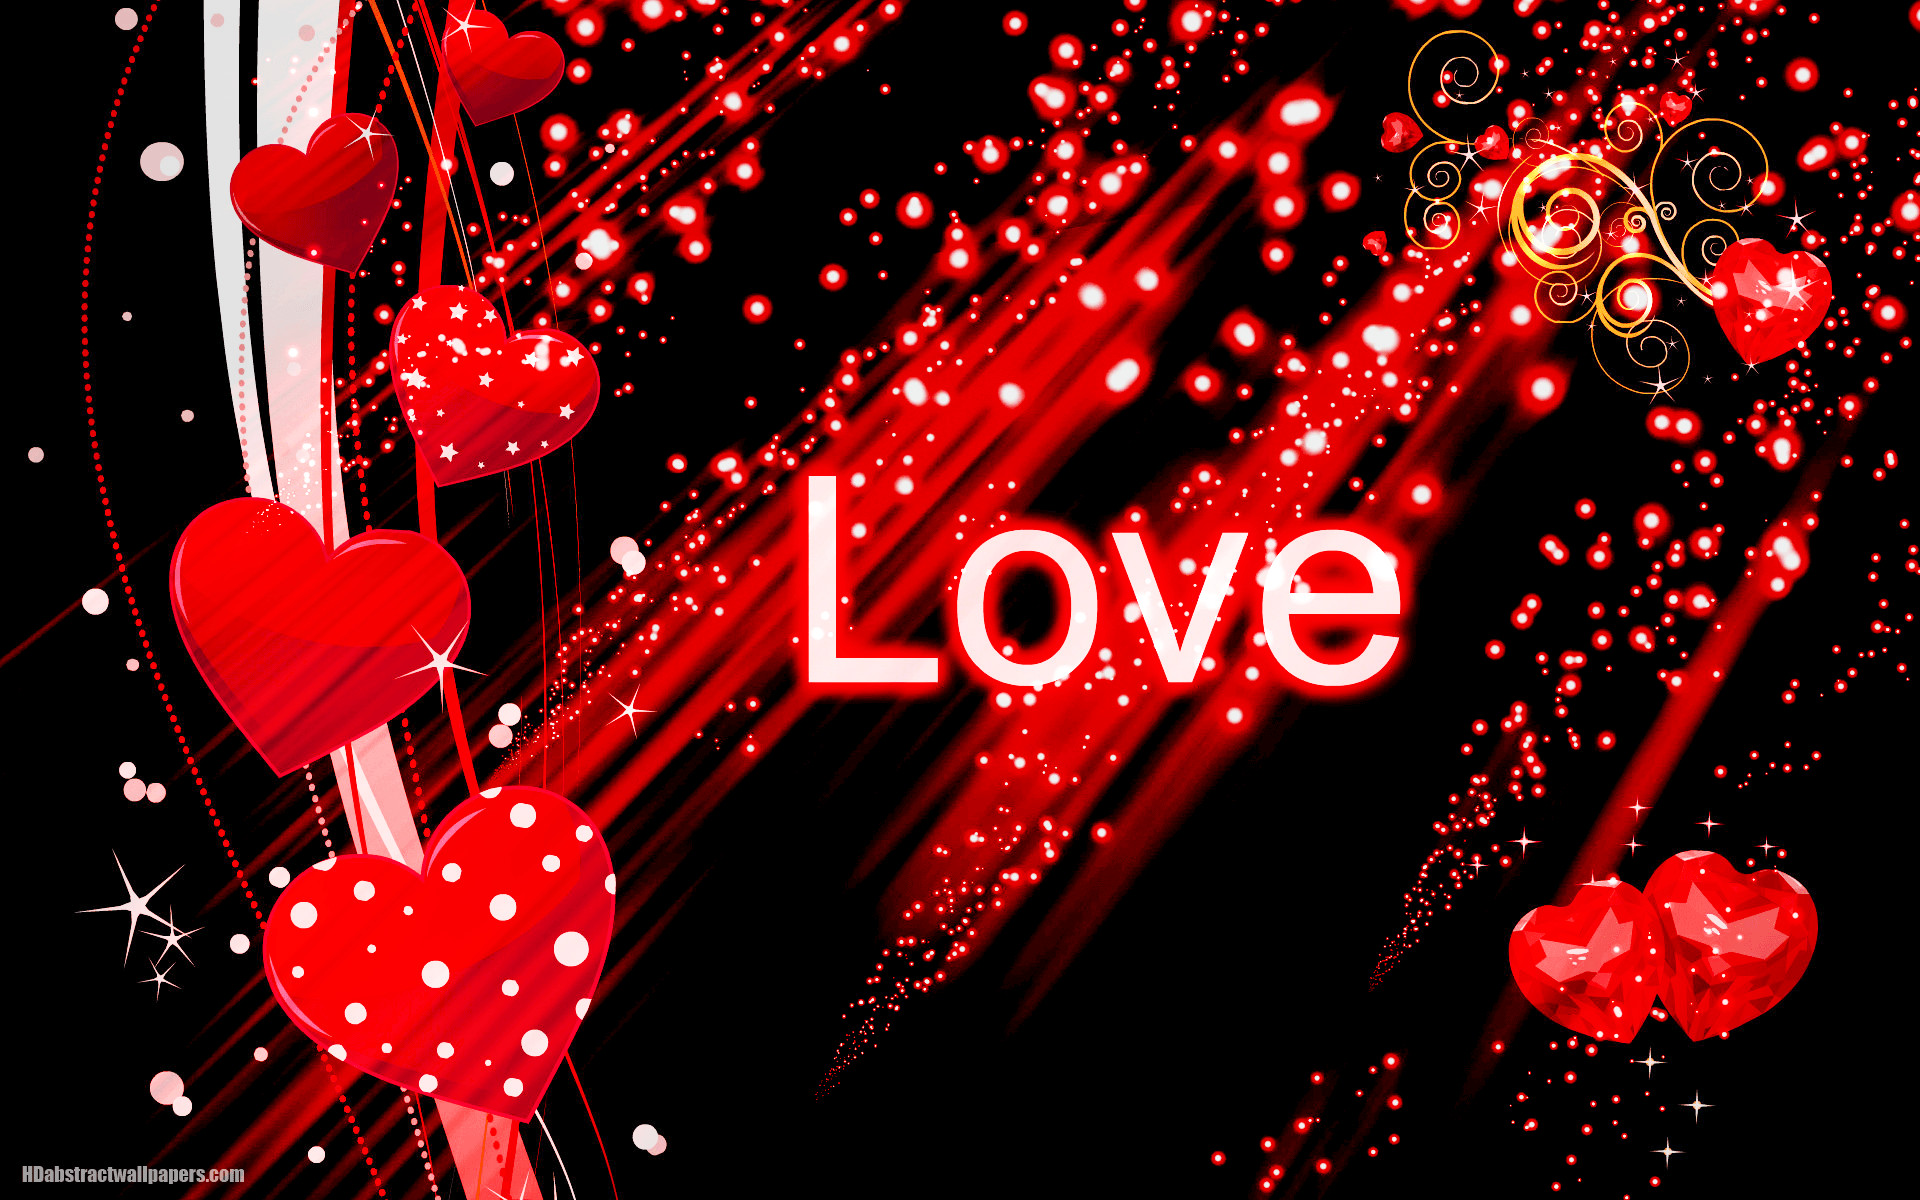 Black abstract wallpaper with red love hearts